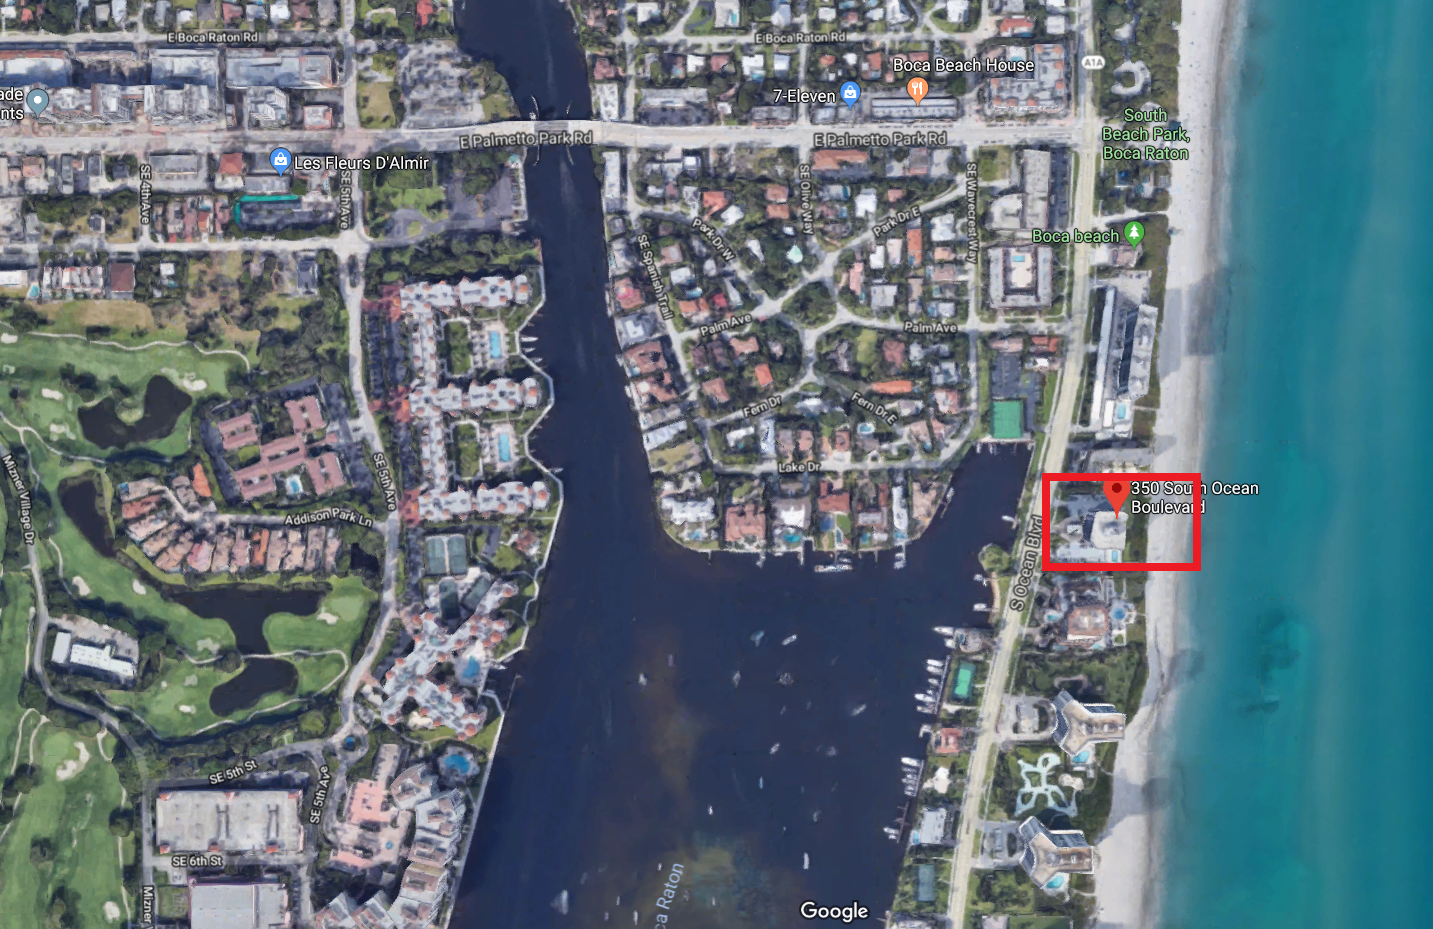 Beresford 350 S Ocean blvd Boca Raton FL 33432 luxury oceanfront condos for sale aerial view